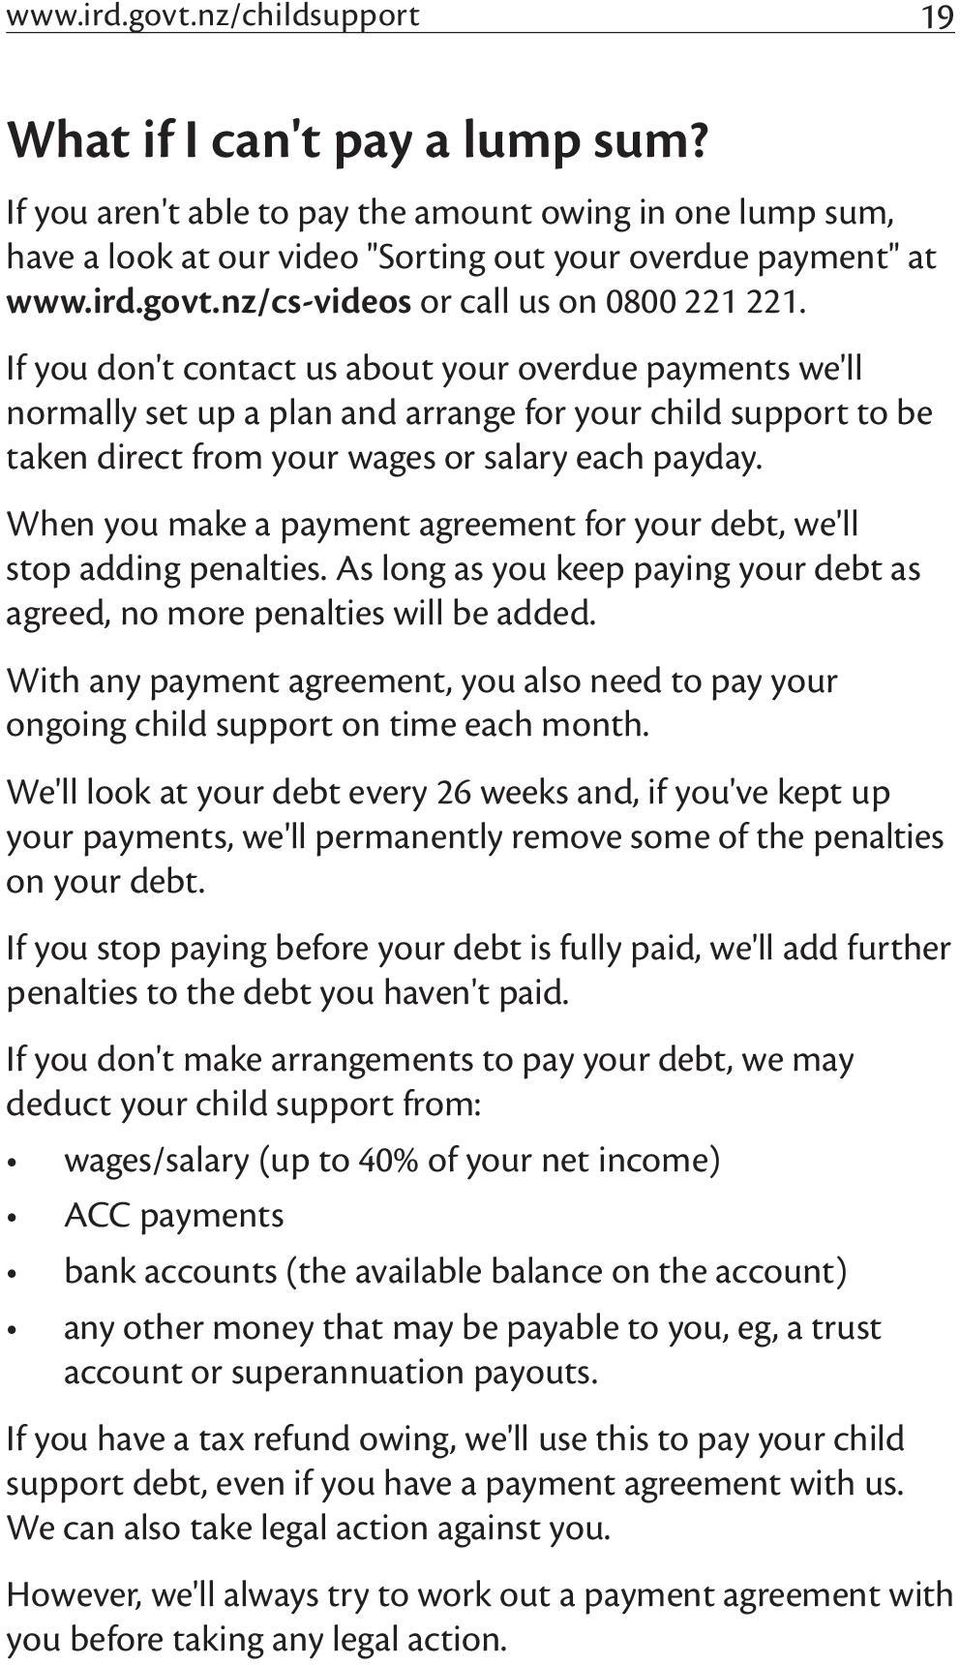 When you make a payment agreement for your debt, we'll stop adding penalties. As long as you keep paying your debt as agreed, no more penalties will be added.